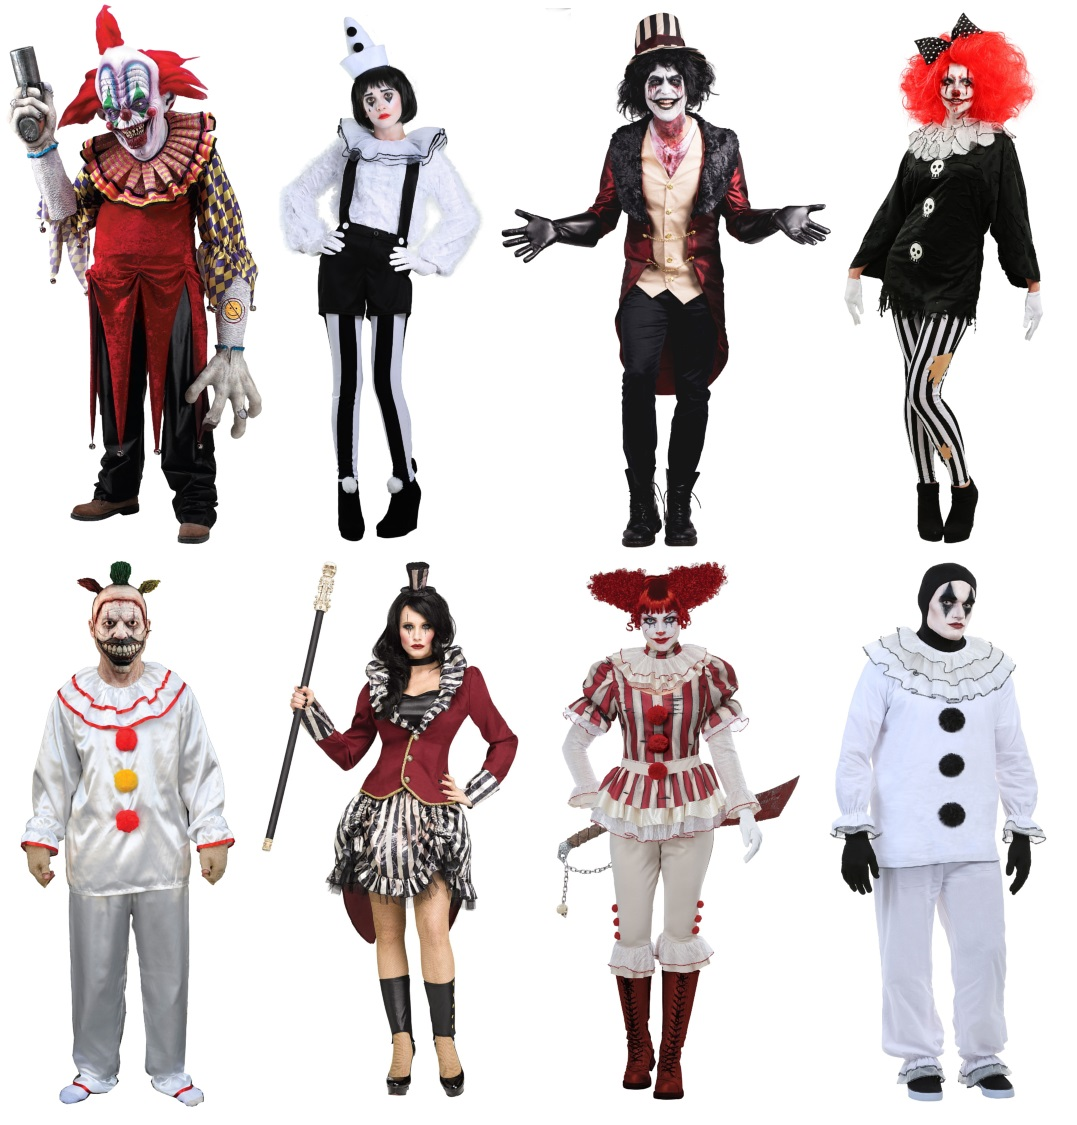 Freak Show Costumes for Those Dark Circus Vibes